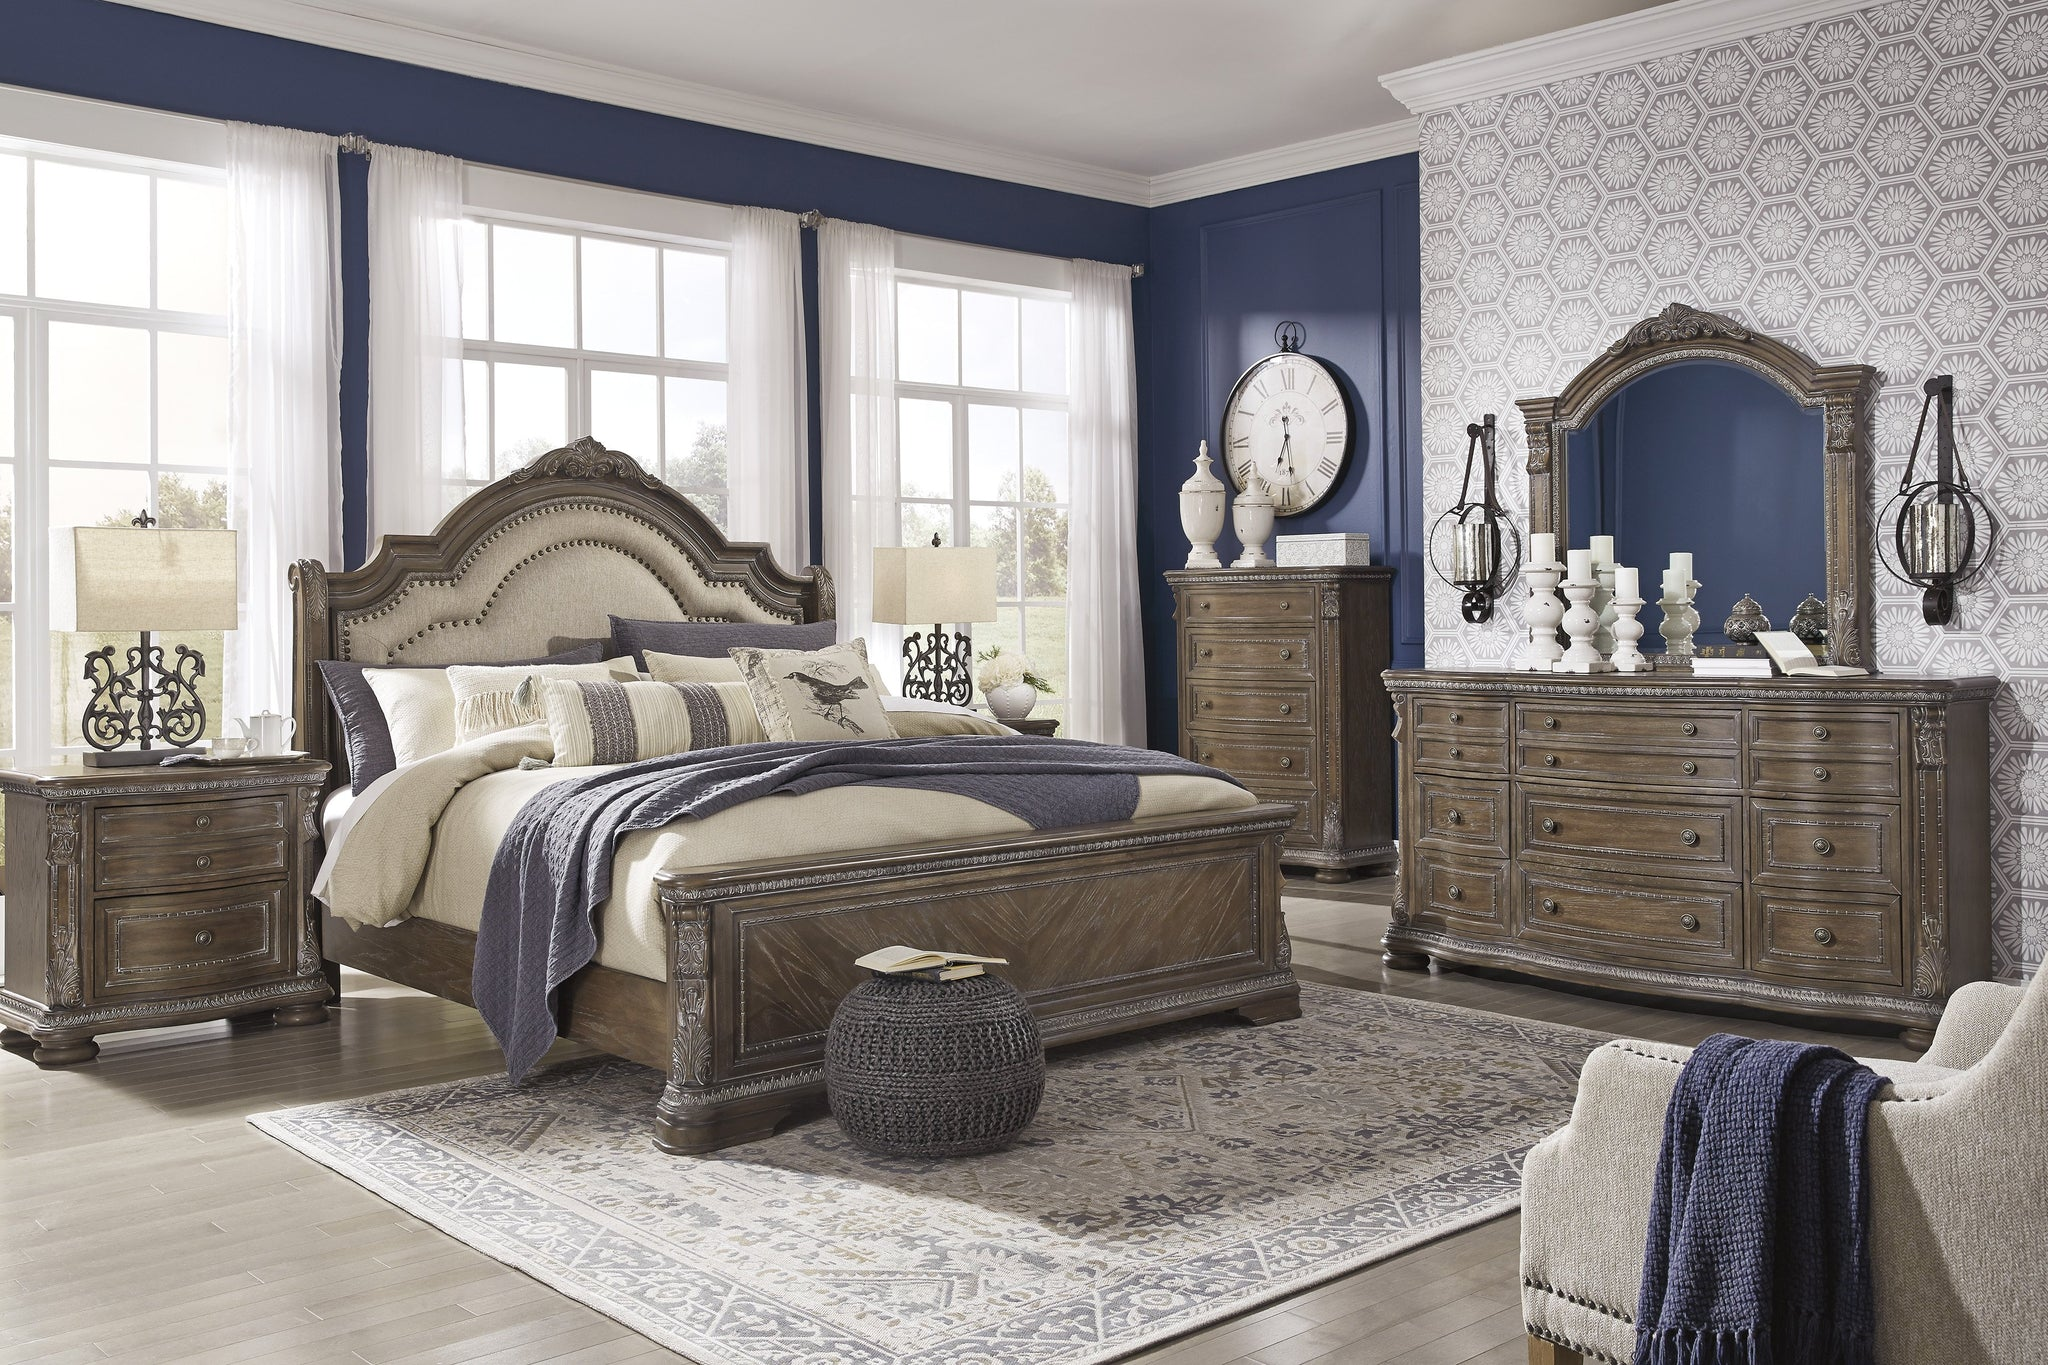 Charmond Signature Design 5-Piece Bedroom Set image